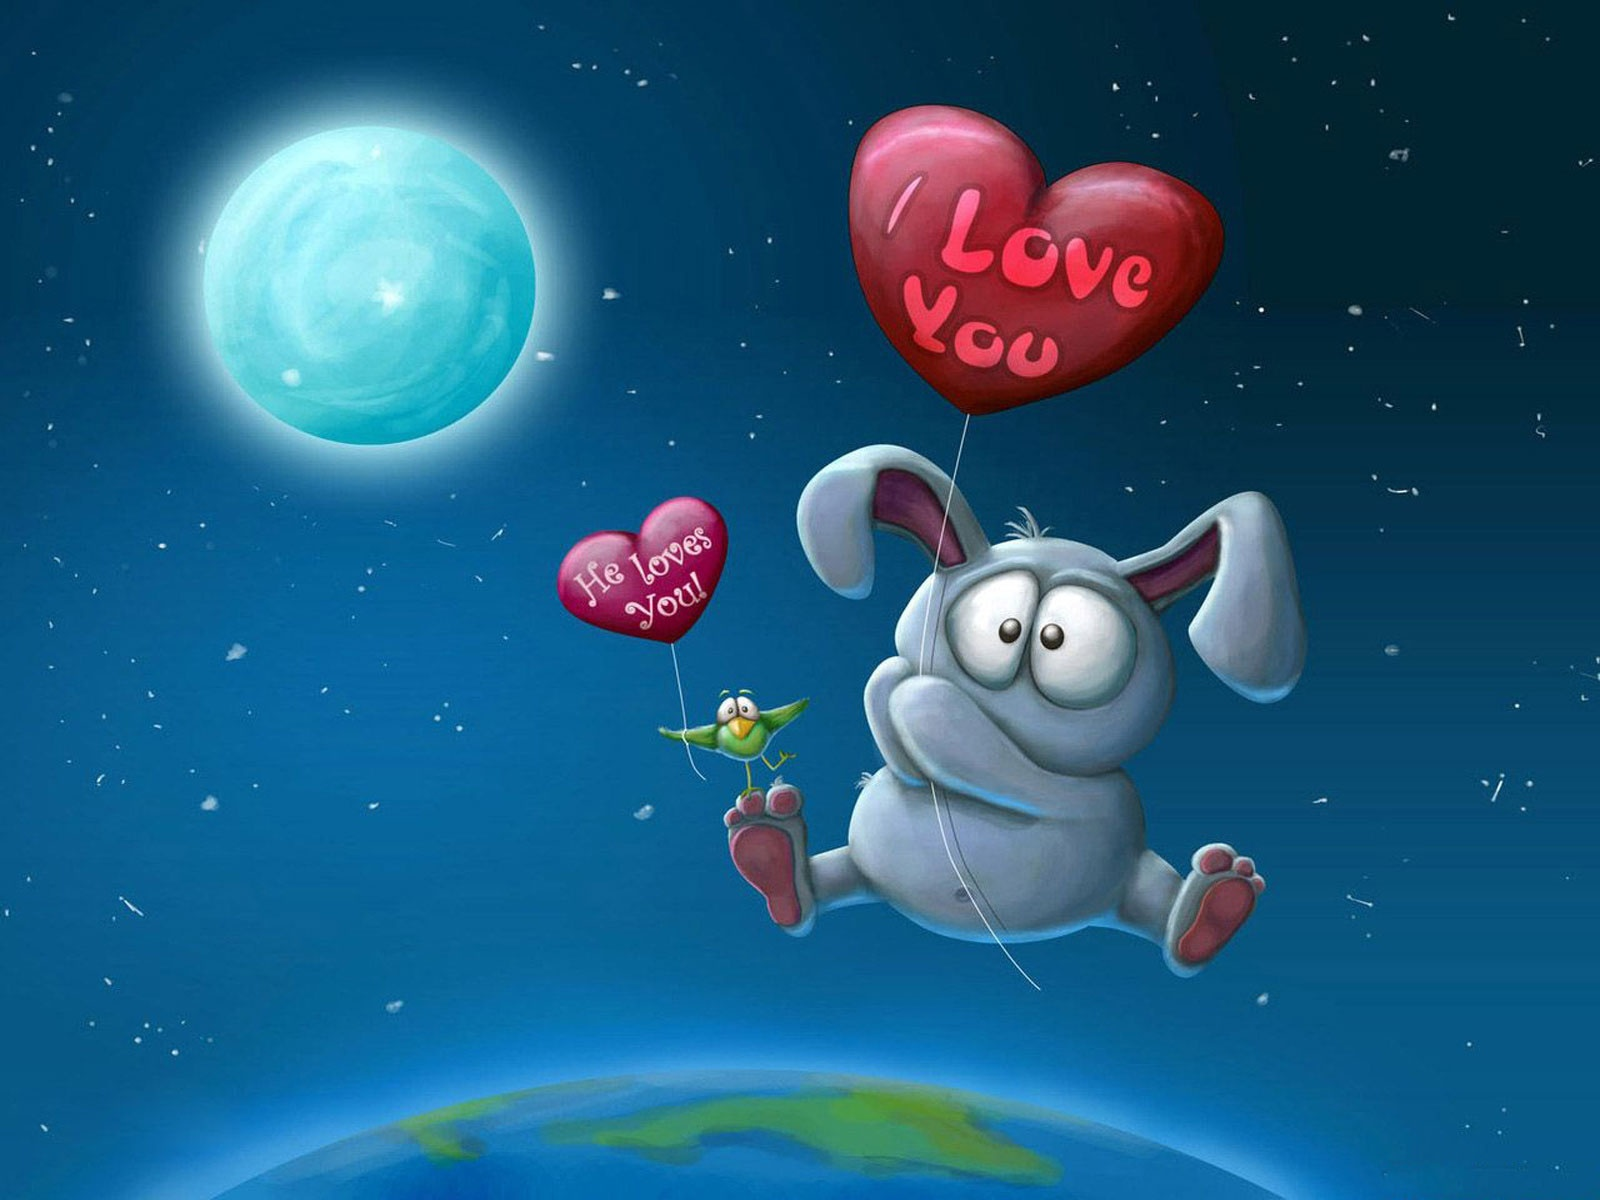 I Love You He loves You 1600x1200 Wallpaper